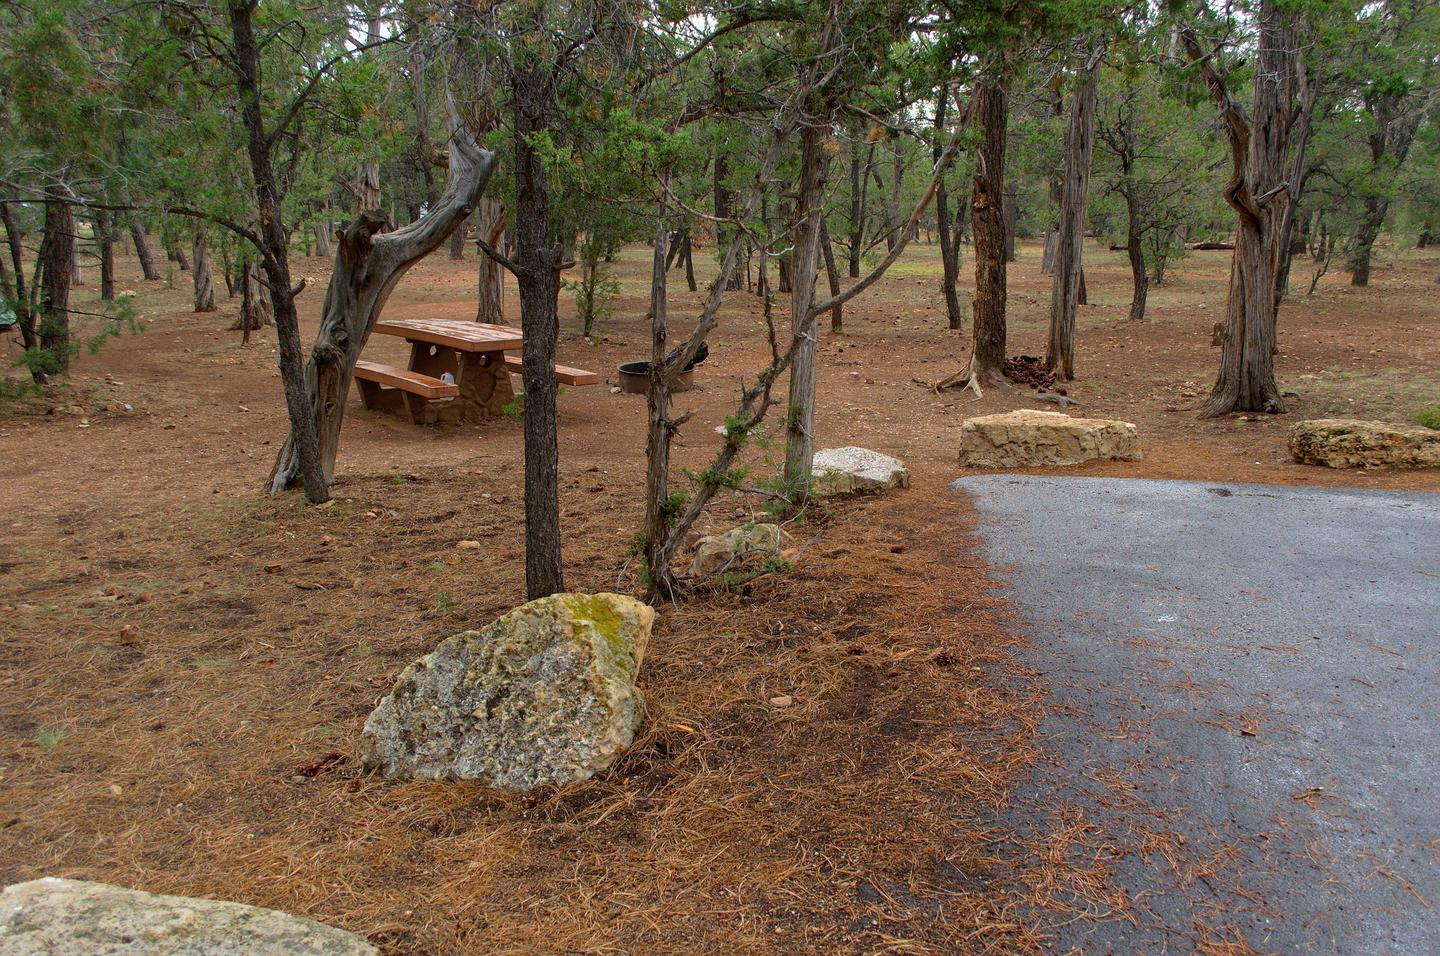 Picnic table, fire pit, and parking spot, Mather Campground8016694822